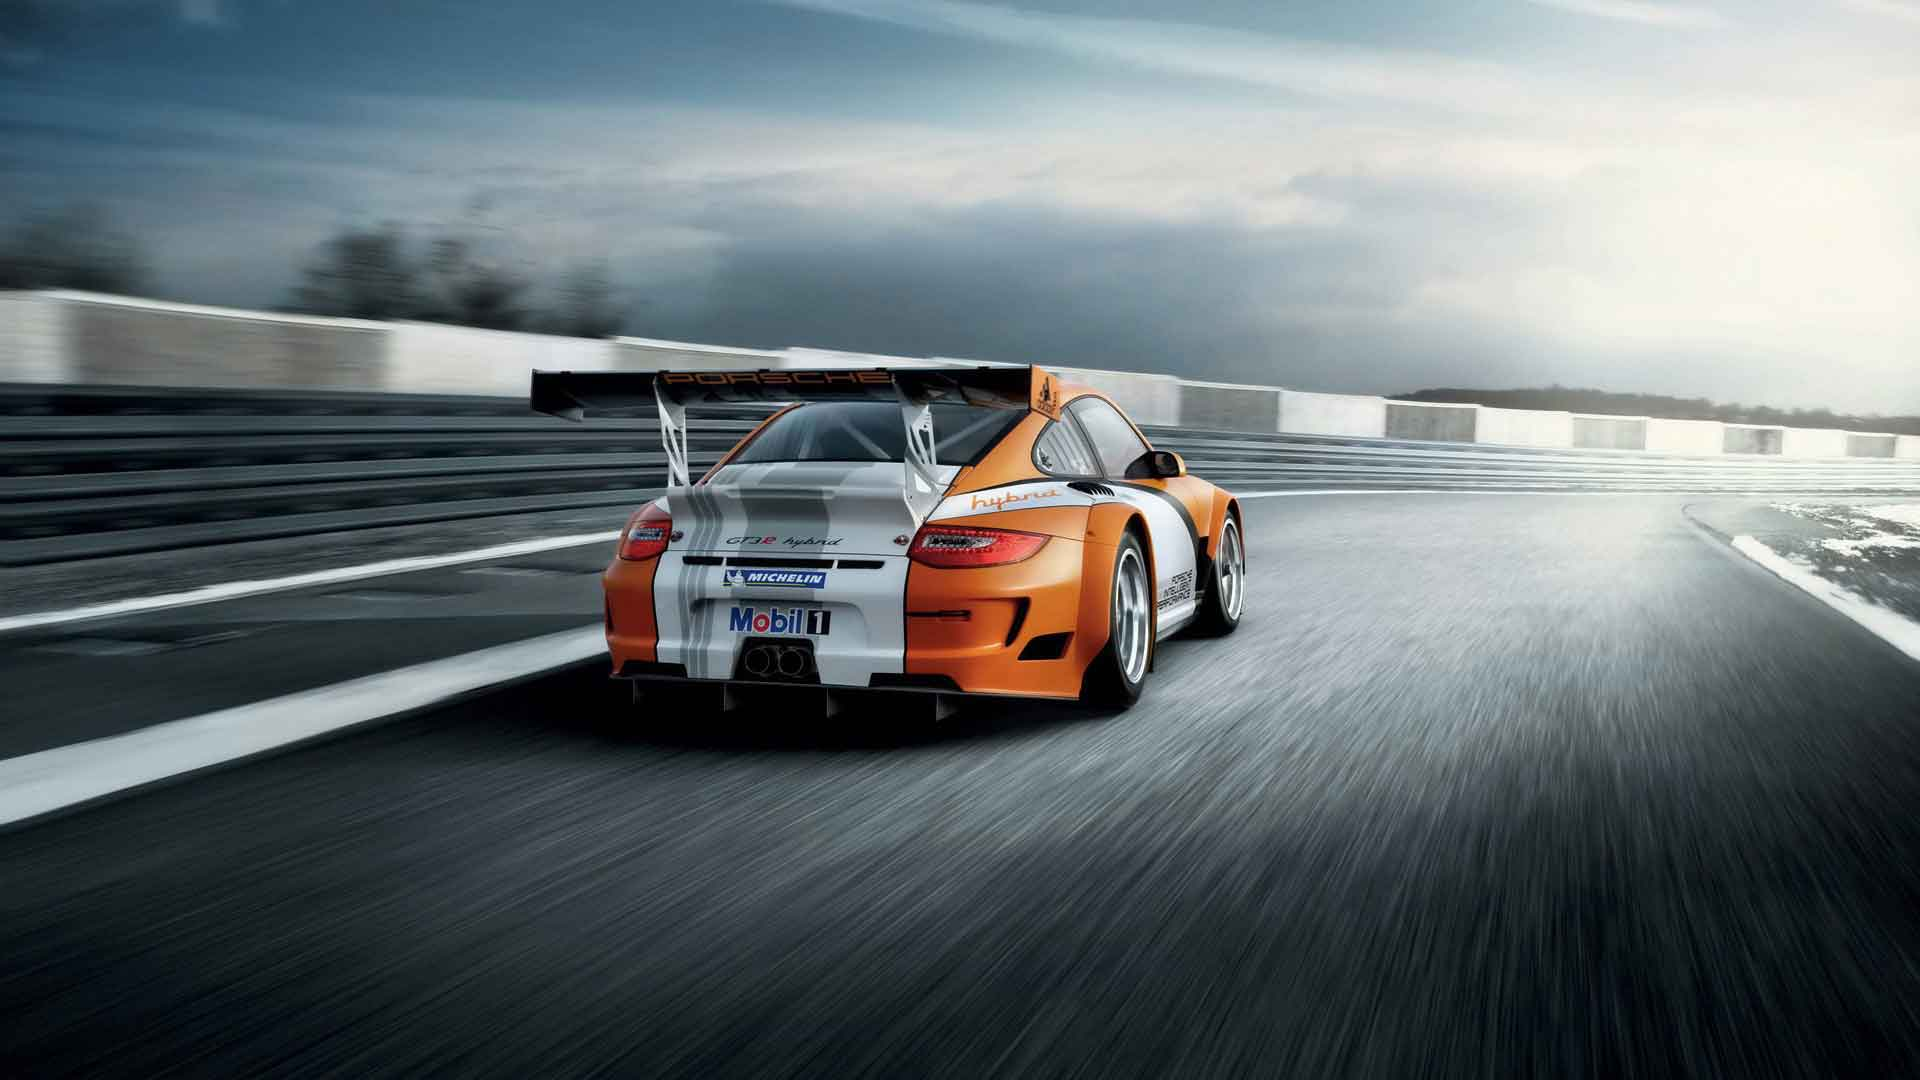 Auto Racing Wallpapers Top Free Auto Racing Backgrounds